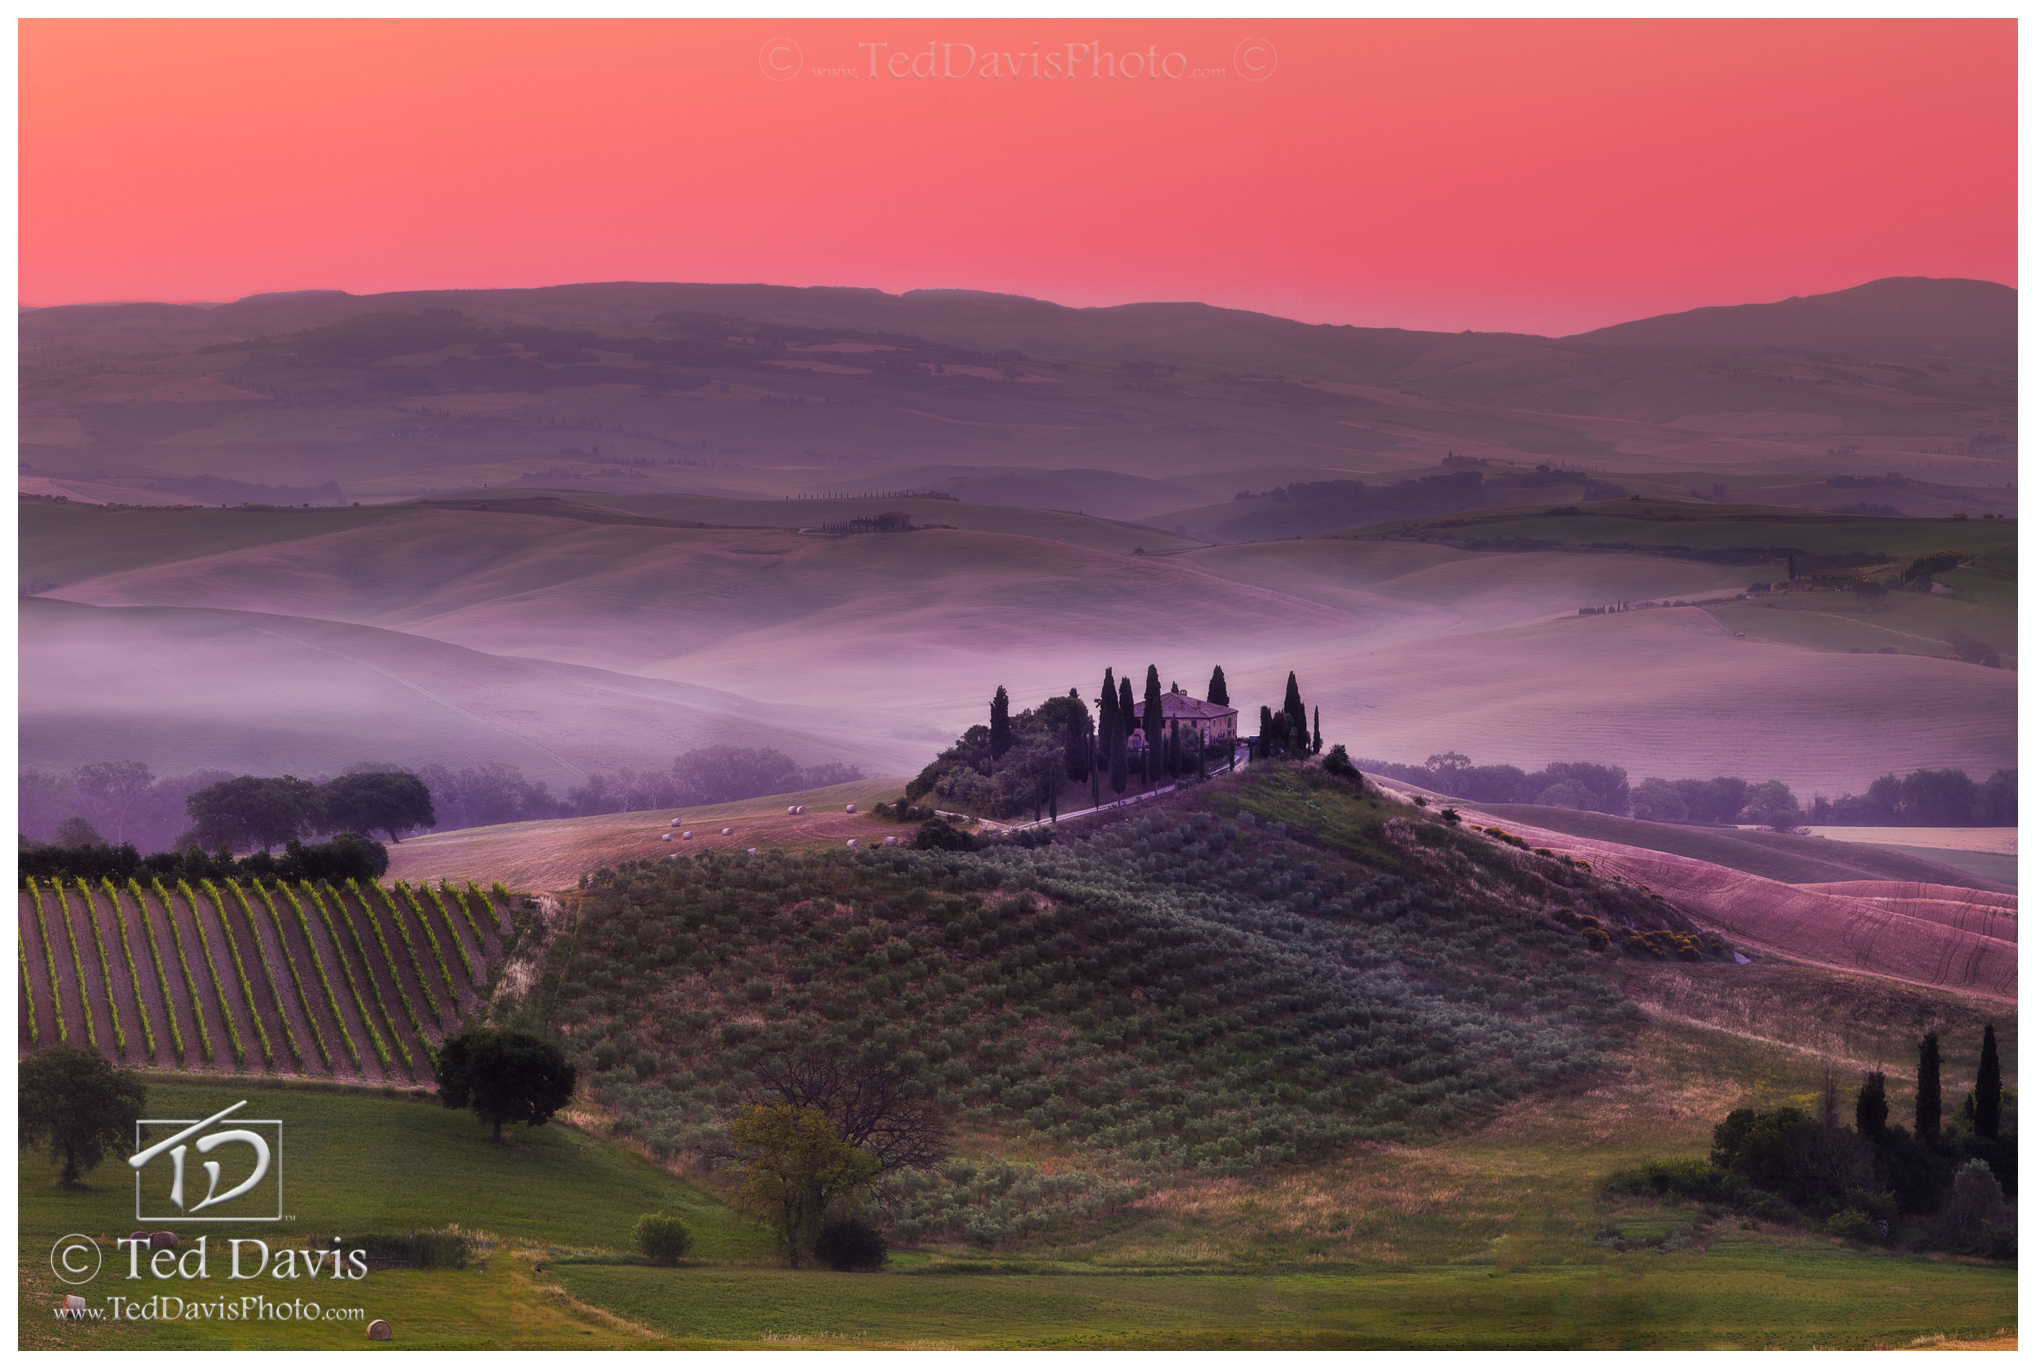 italy, tuscany, tuscan, wine, olive, grape, belvedere, idyllic, dawn, fog, montalcino, landscape, beauty, timeless, cultivating, perfect, photo